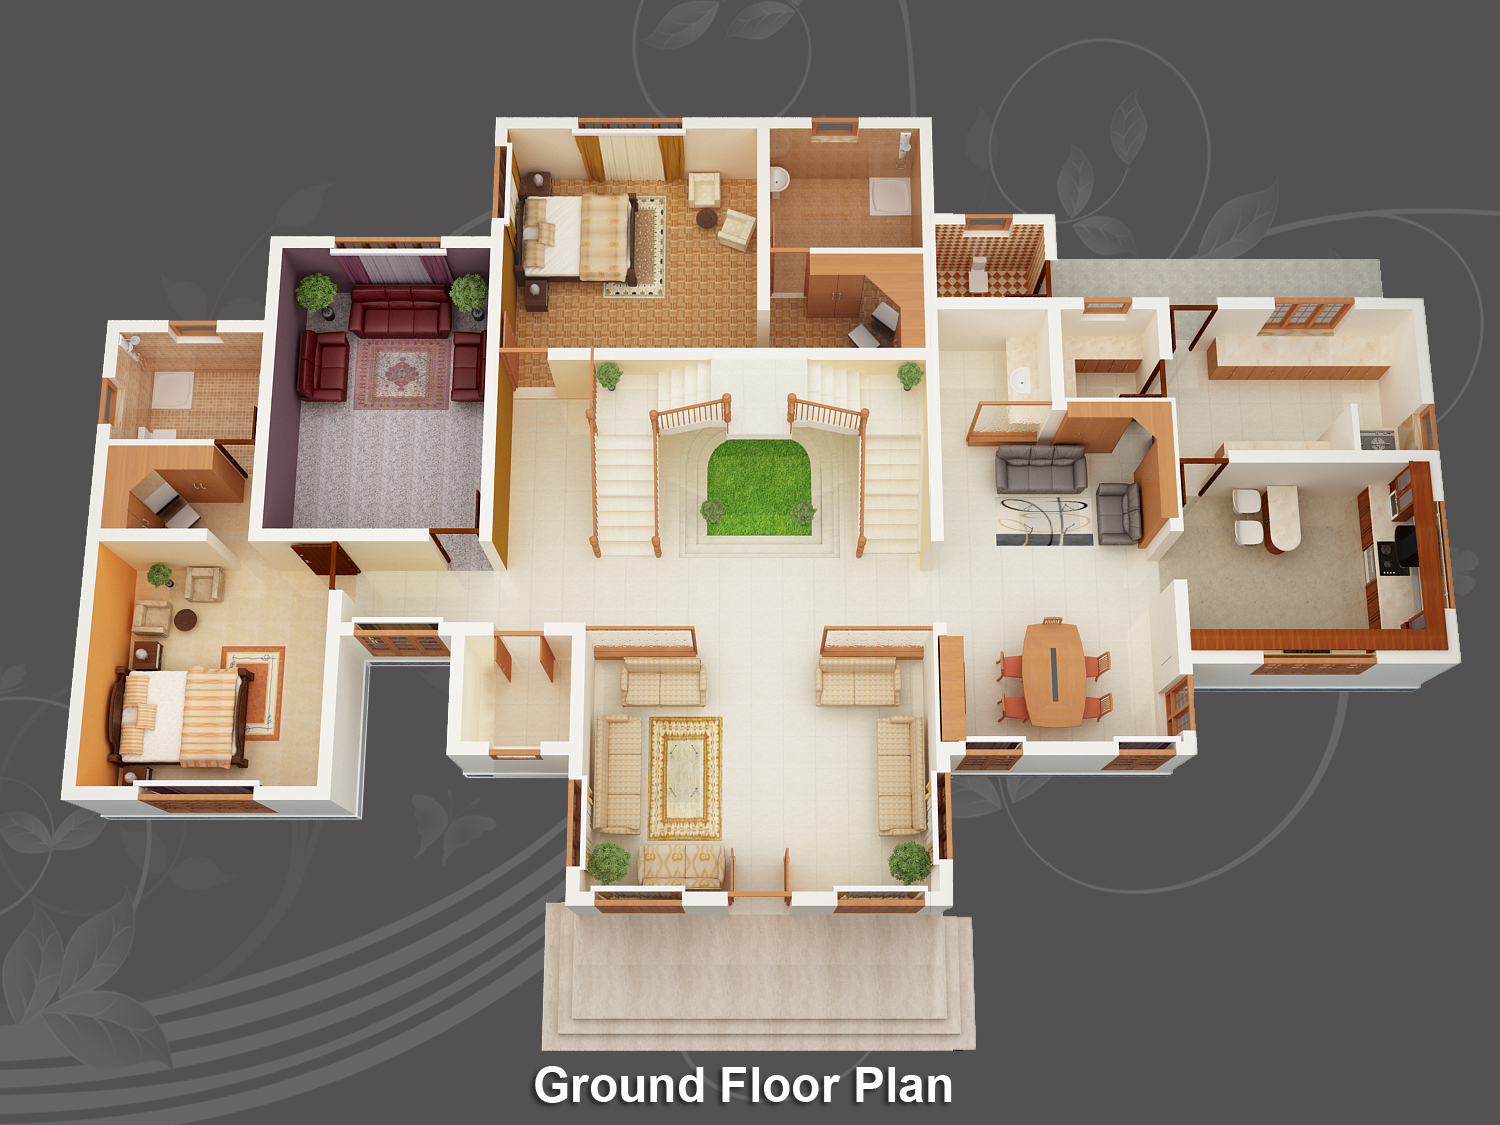 Evens construction pvt ltd 3d house plan 20 05 2011 for Small house plan design 3d